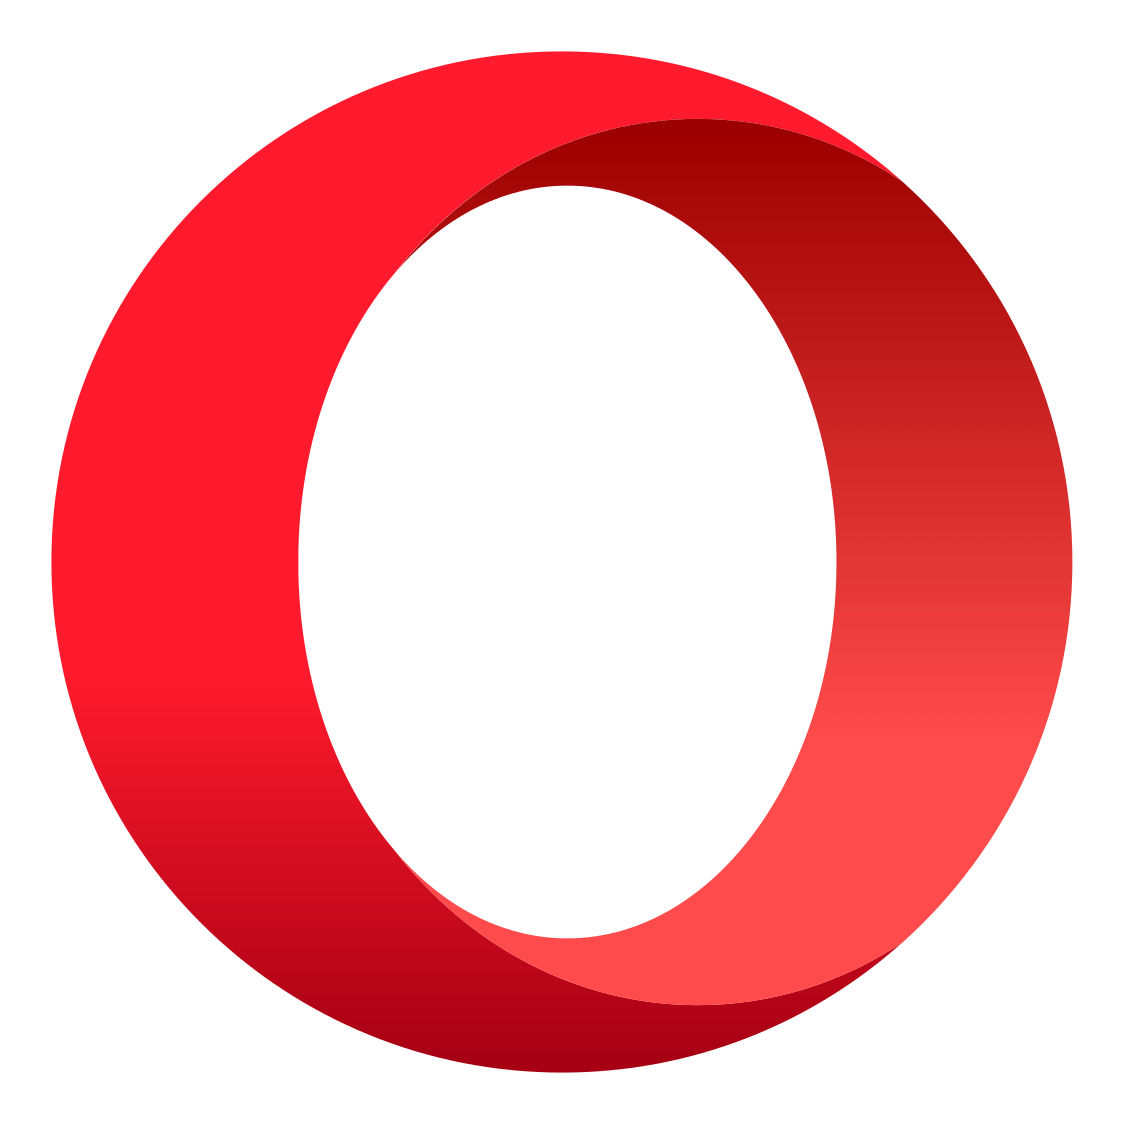 Opera 54.0.2952.71 Download - TechSpot